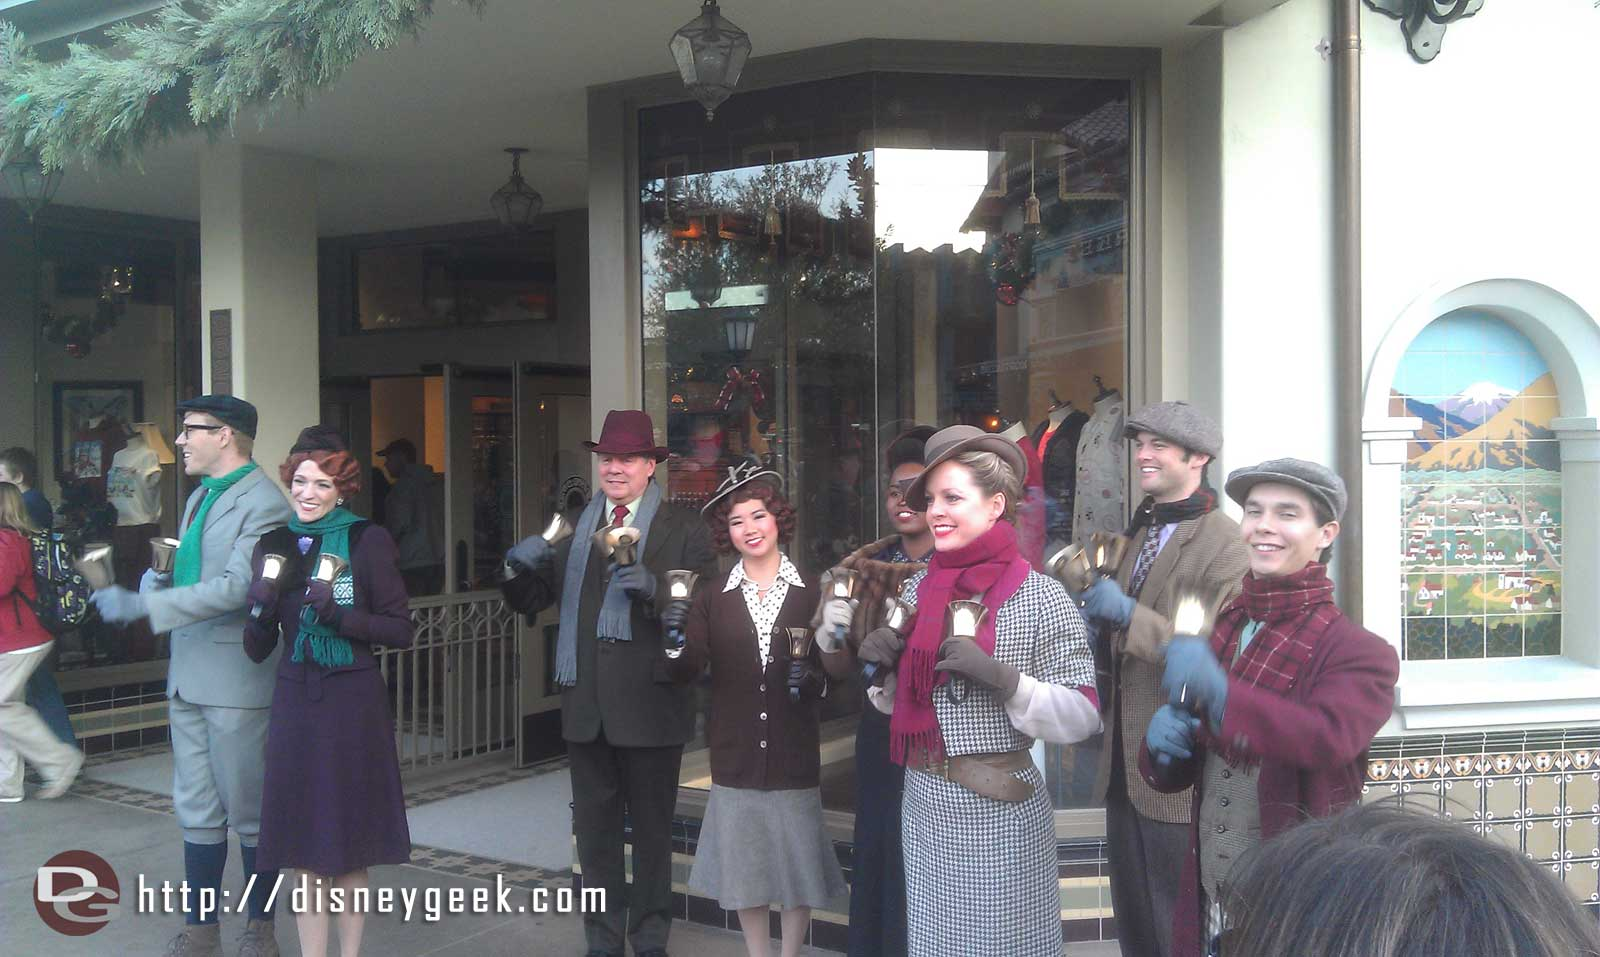 The #BuenaVistaStreet Community Bell Ringers leading a sing a long